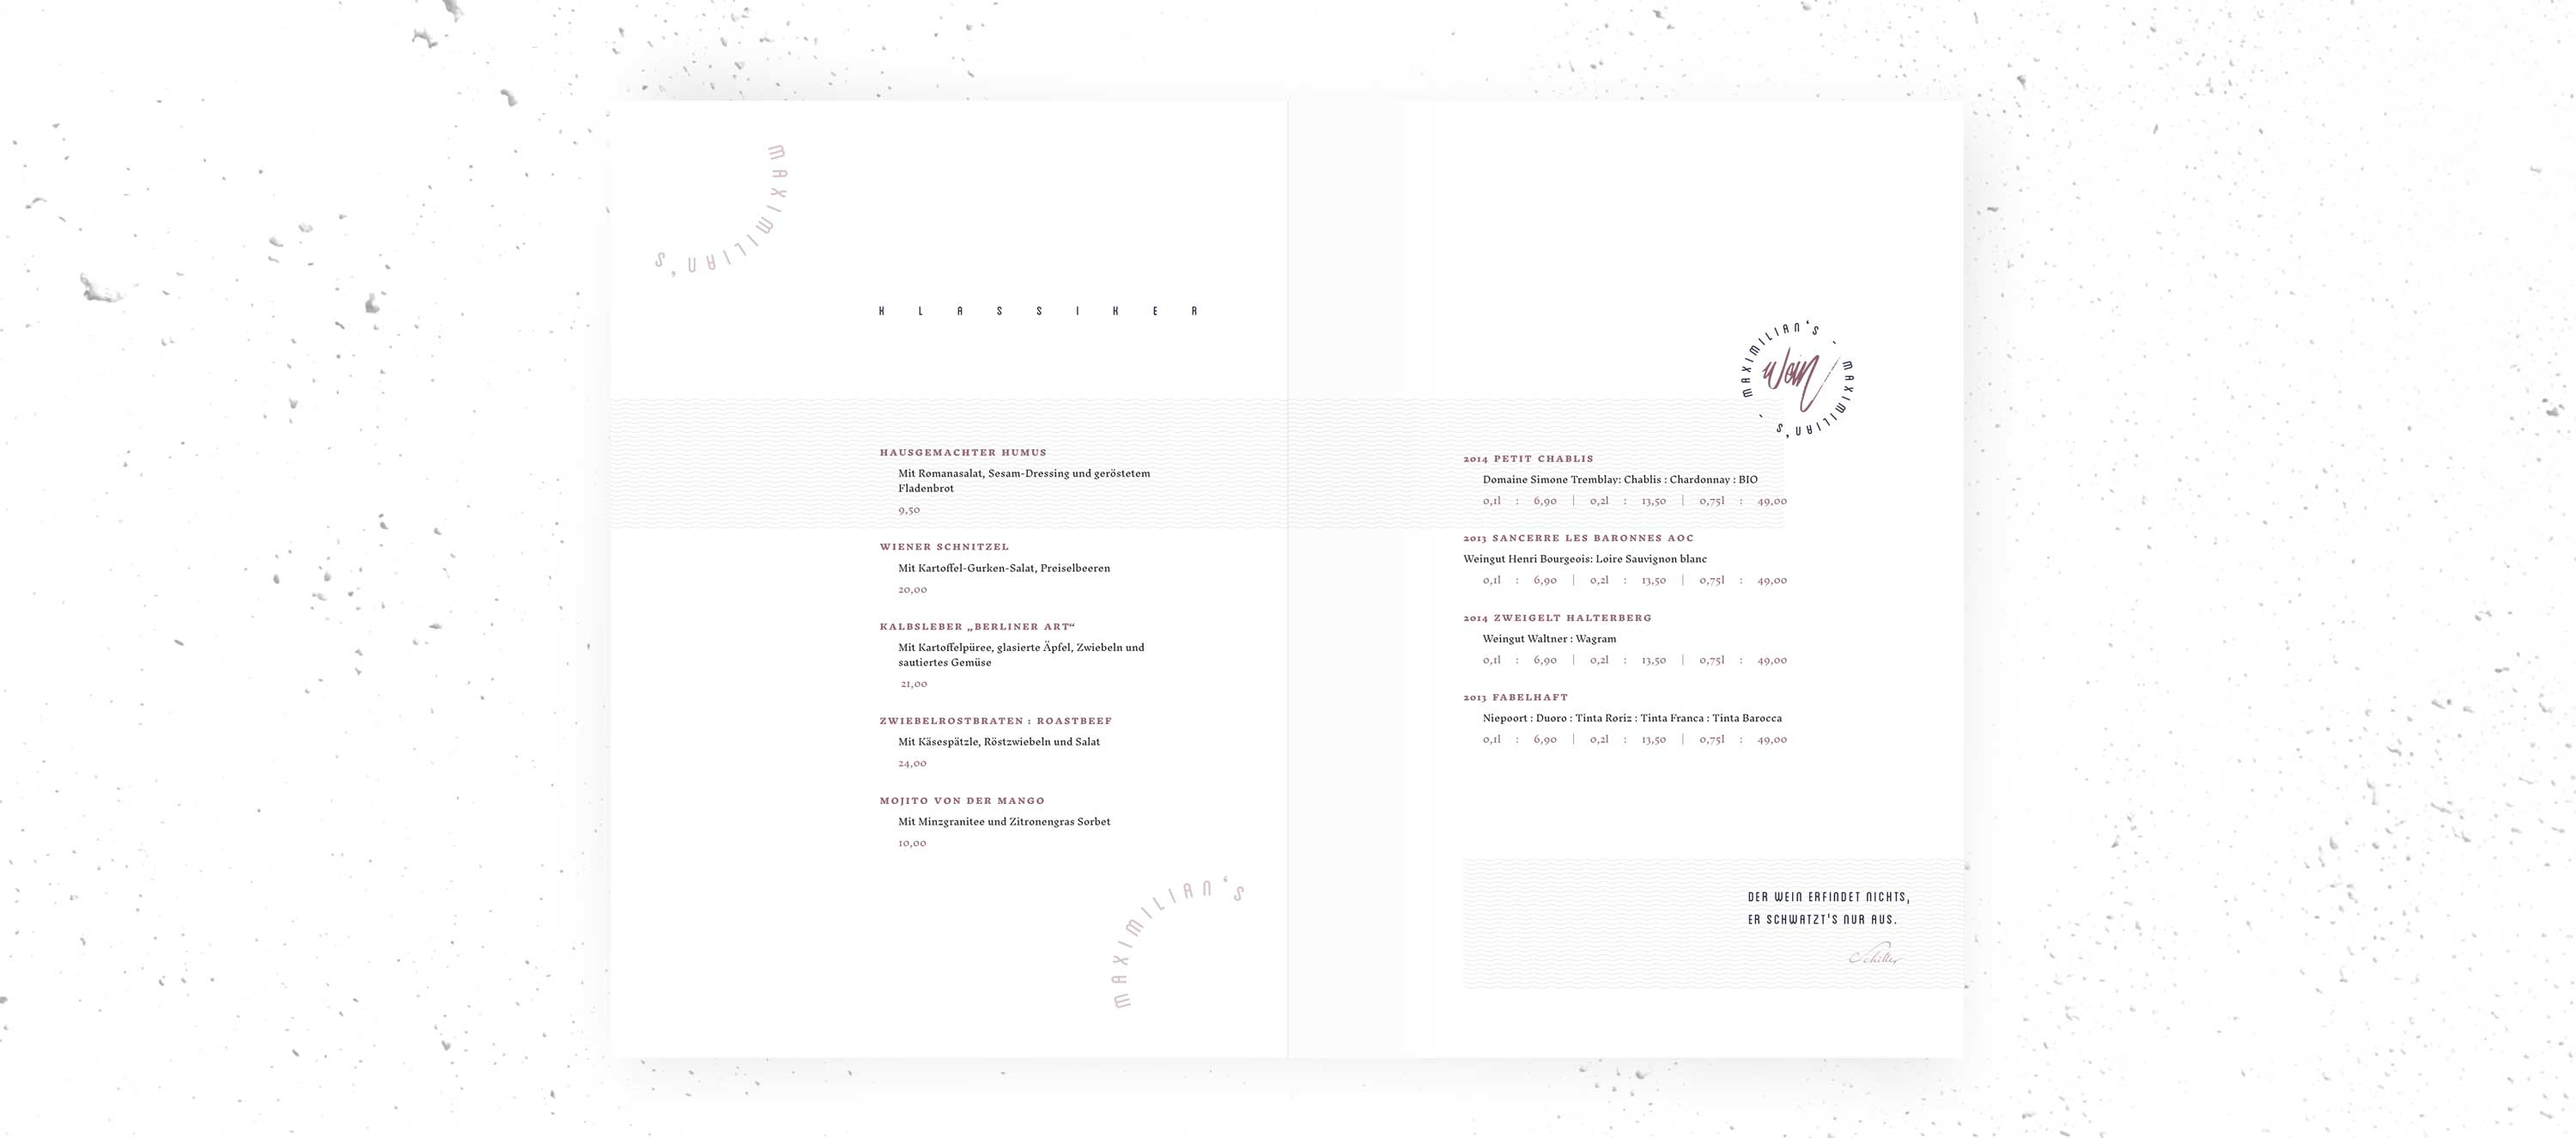 blockundstift-speisekarte-design-layout-restaurant-studie-4